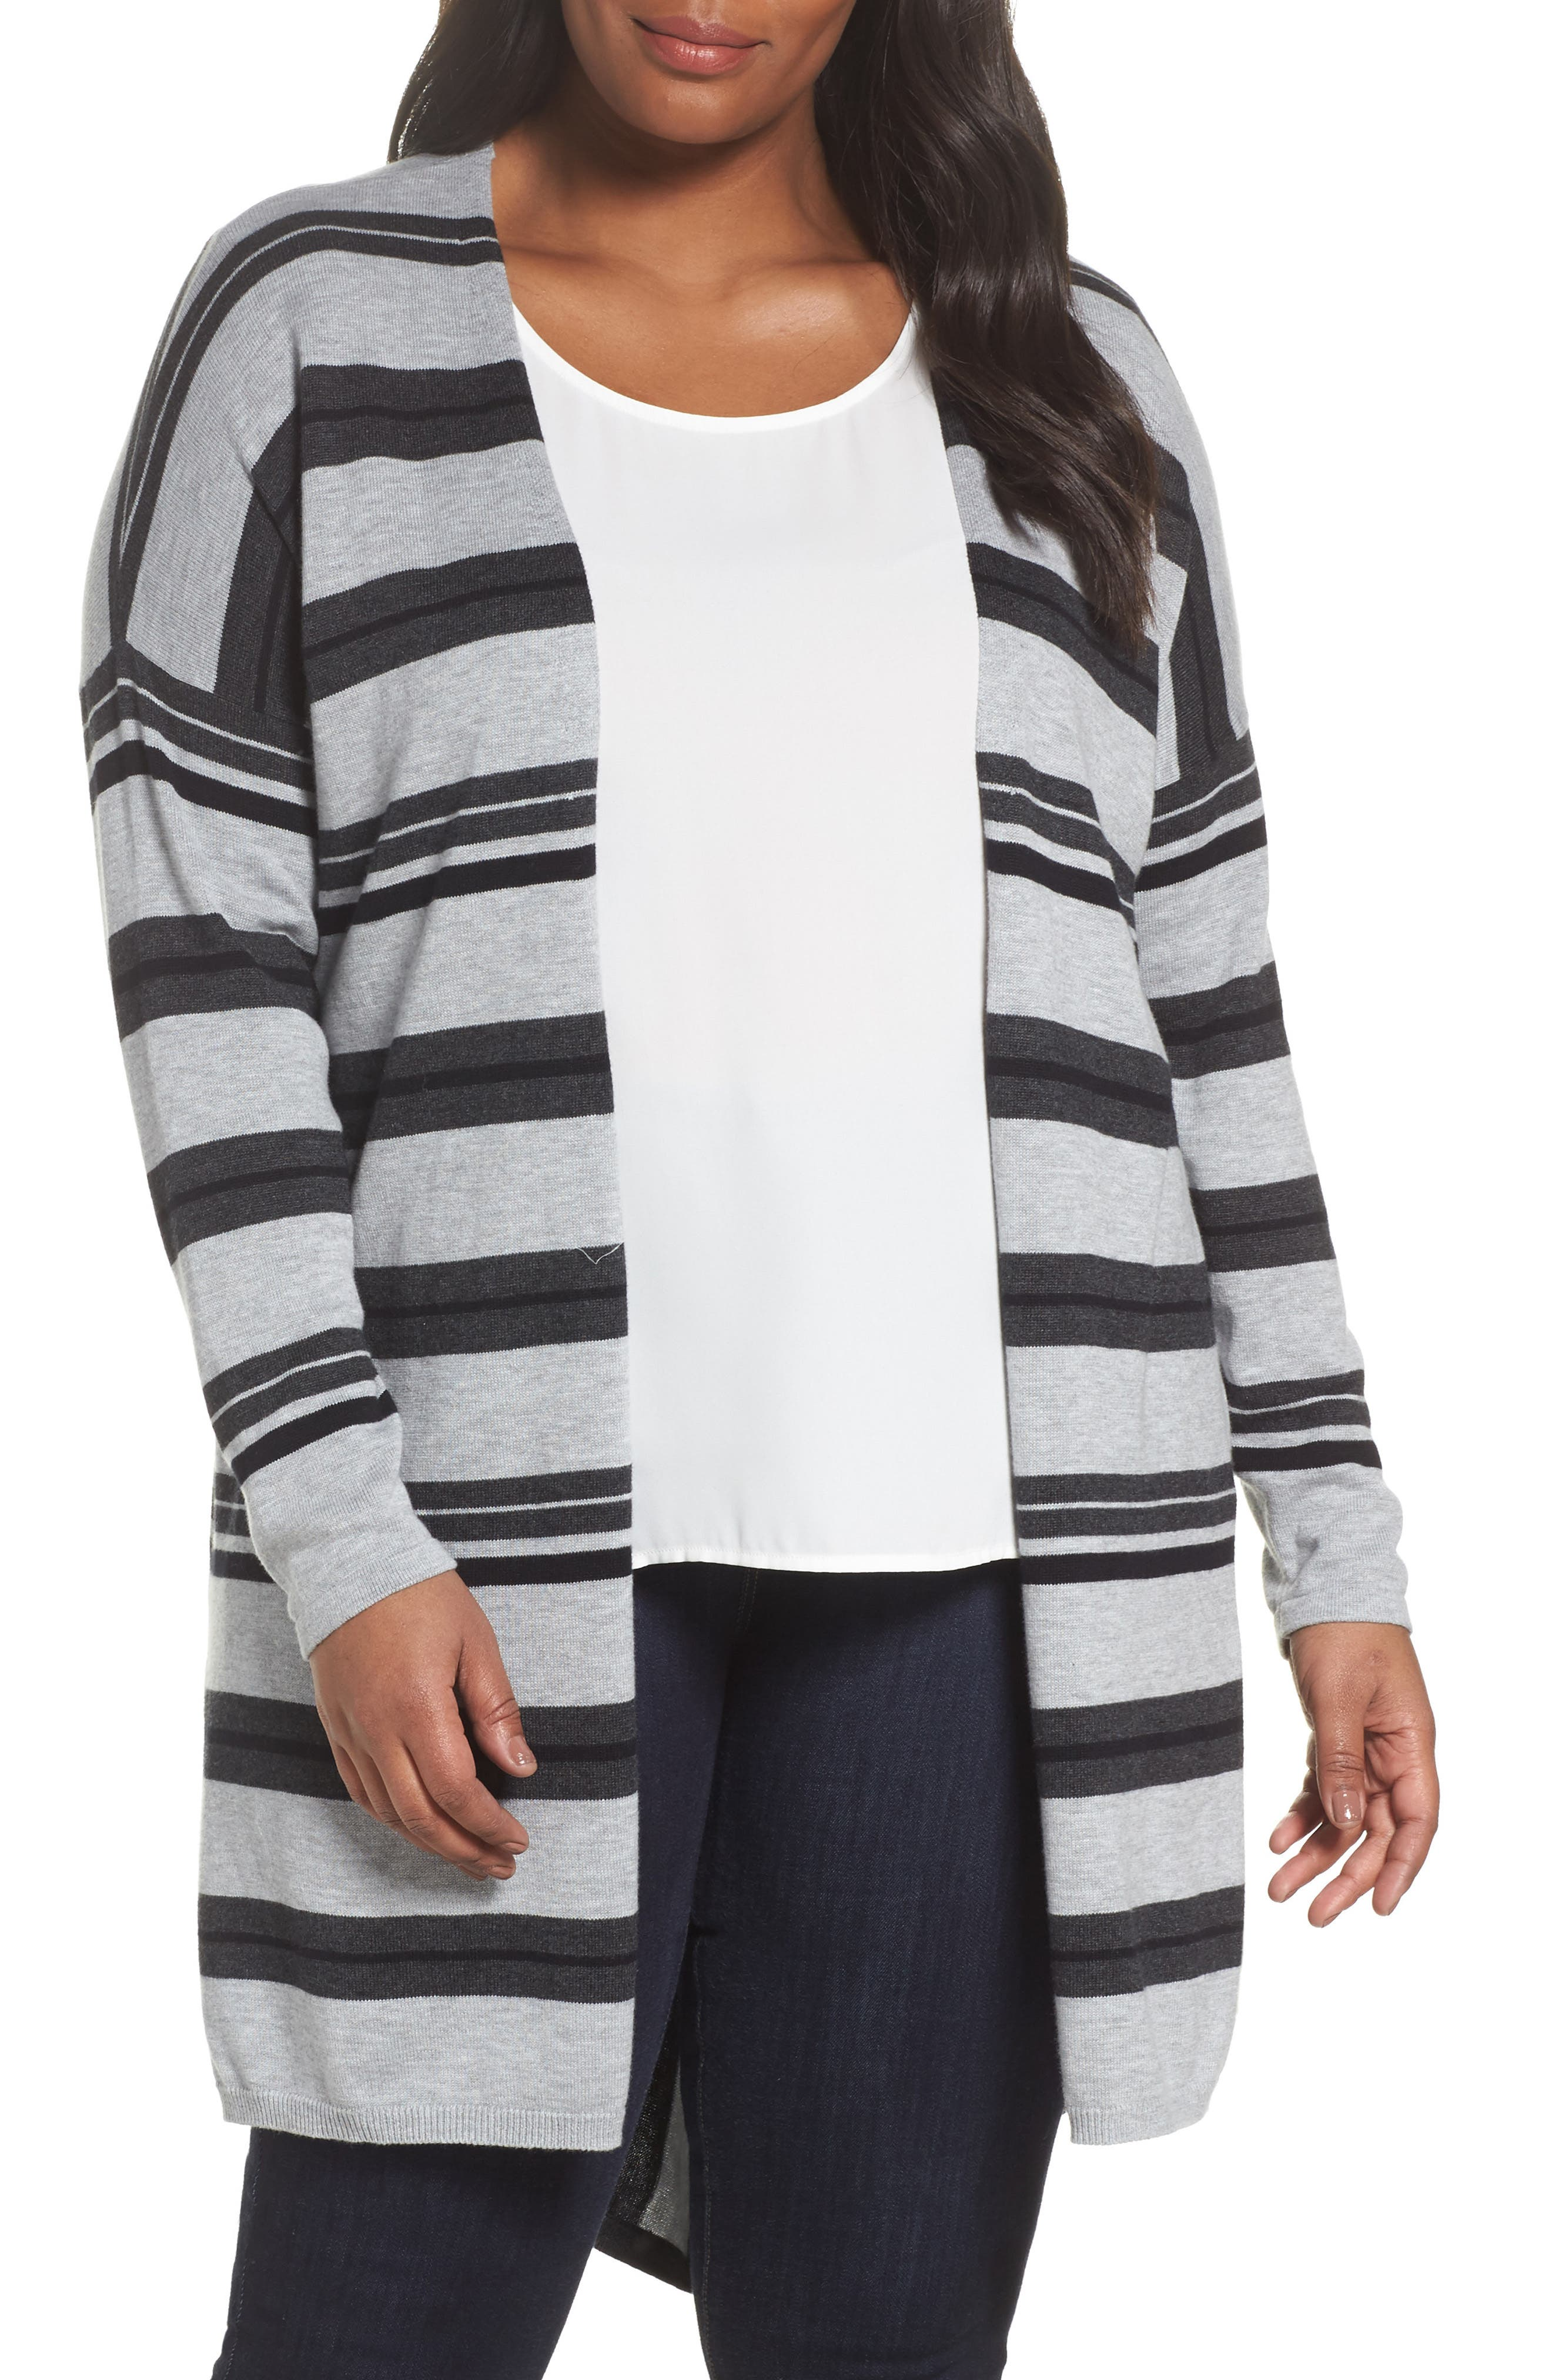 Alternate Image 1 Selected - Vince Camuto Long Stripe Cardigan (Plus Size)